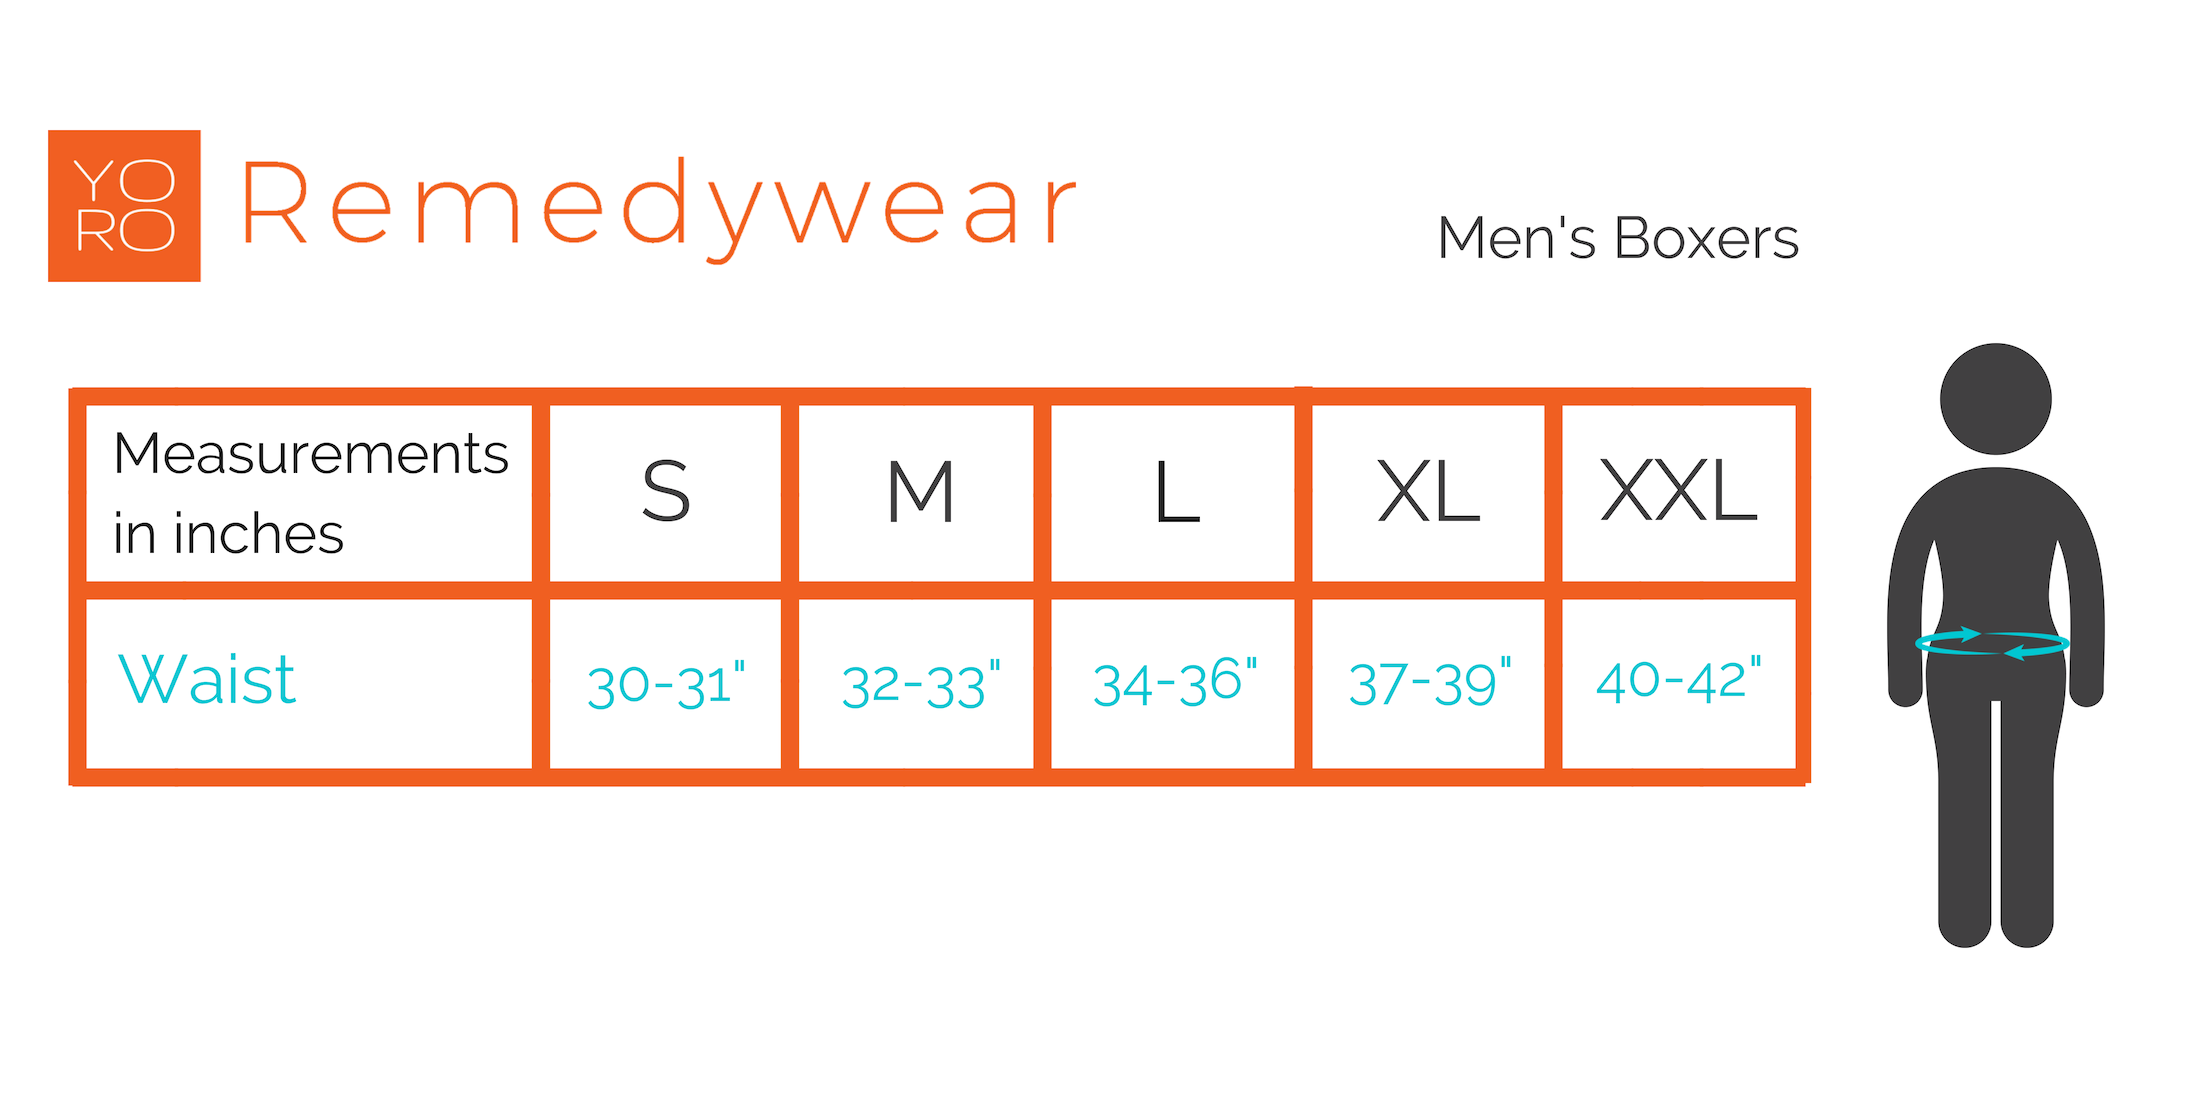 remedywear men boxers